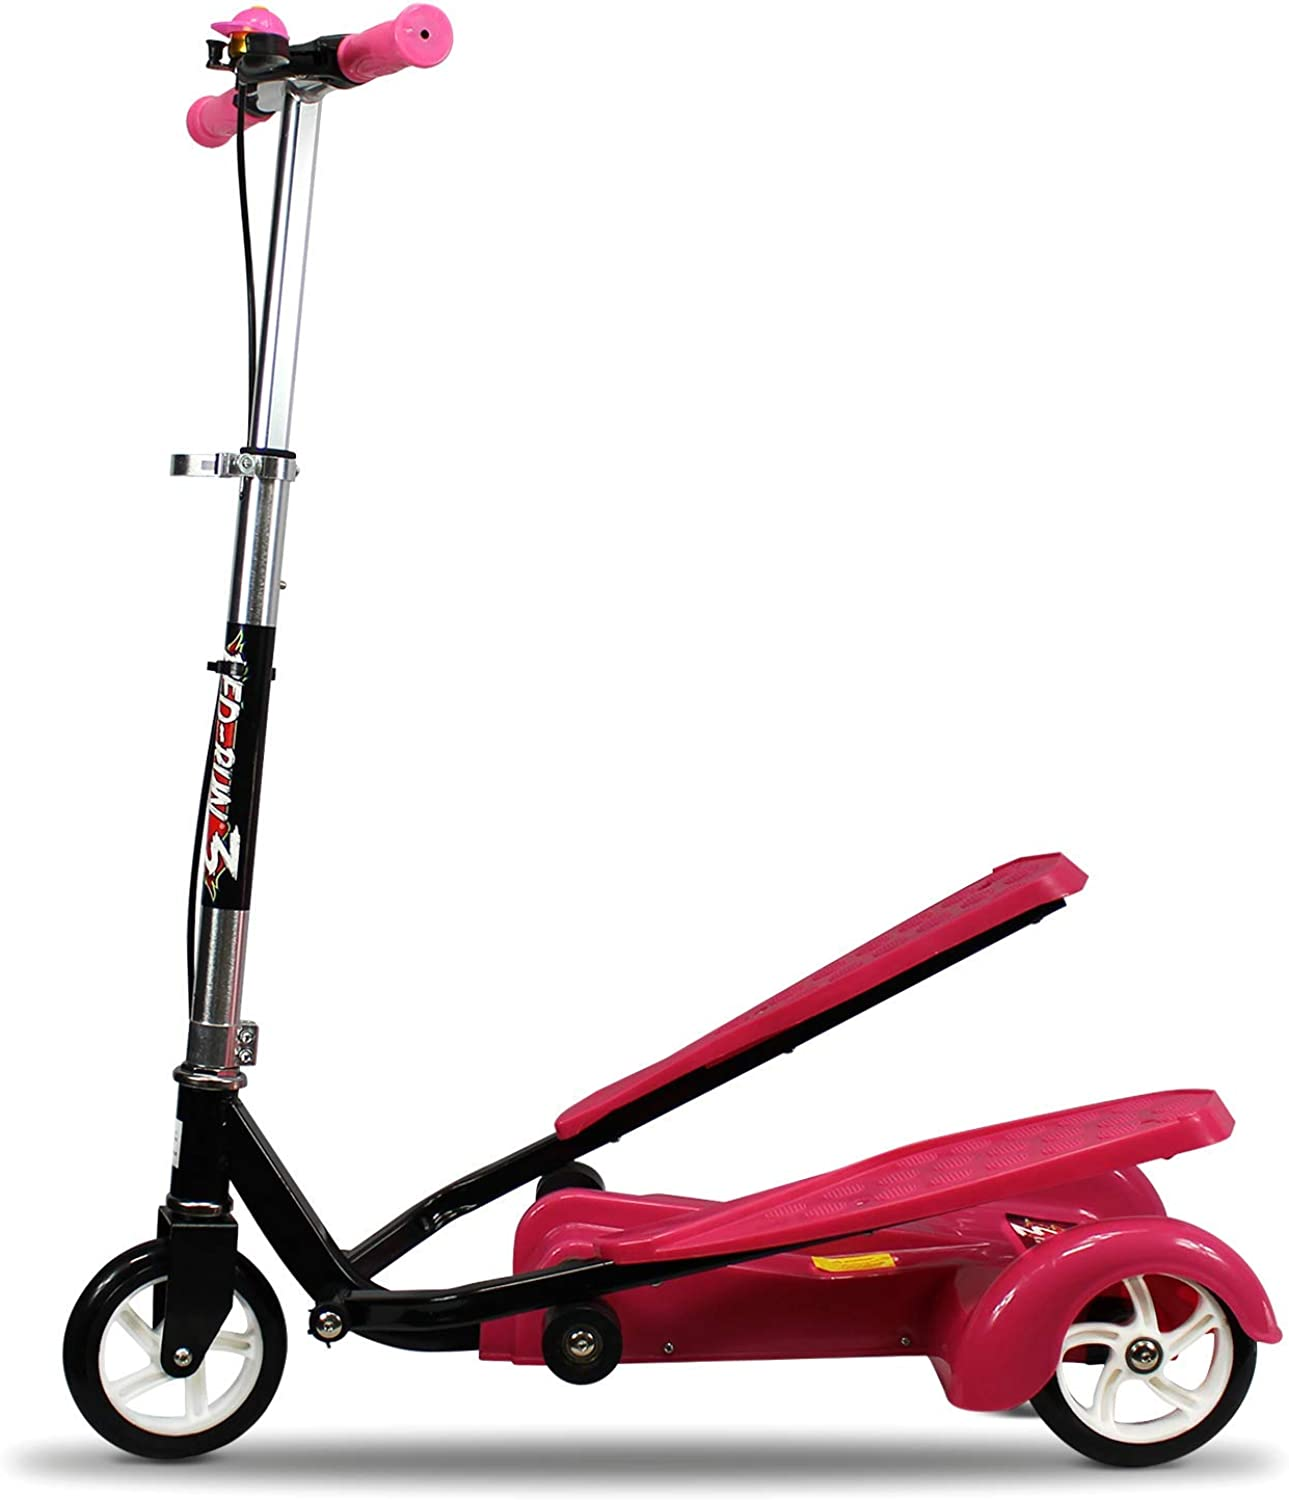 PedRun3 Kids Scooter for Boys and Girls with Advanced Dual Pedal Action, Bike Scooter Hybrid (Pink)